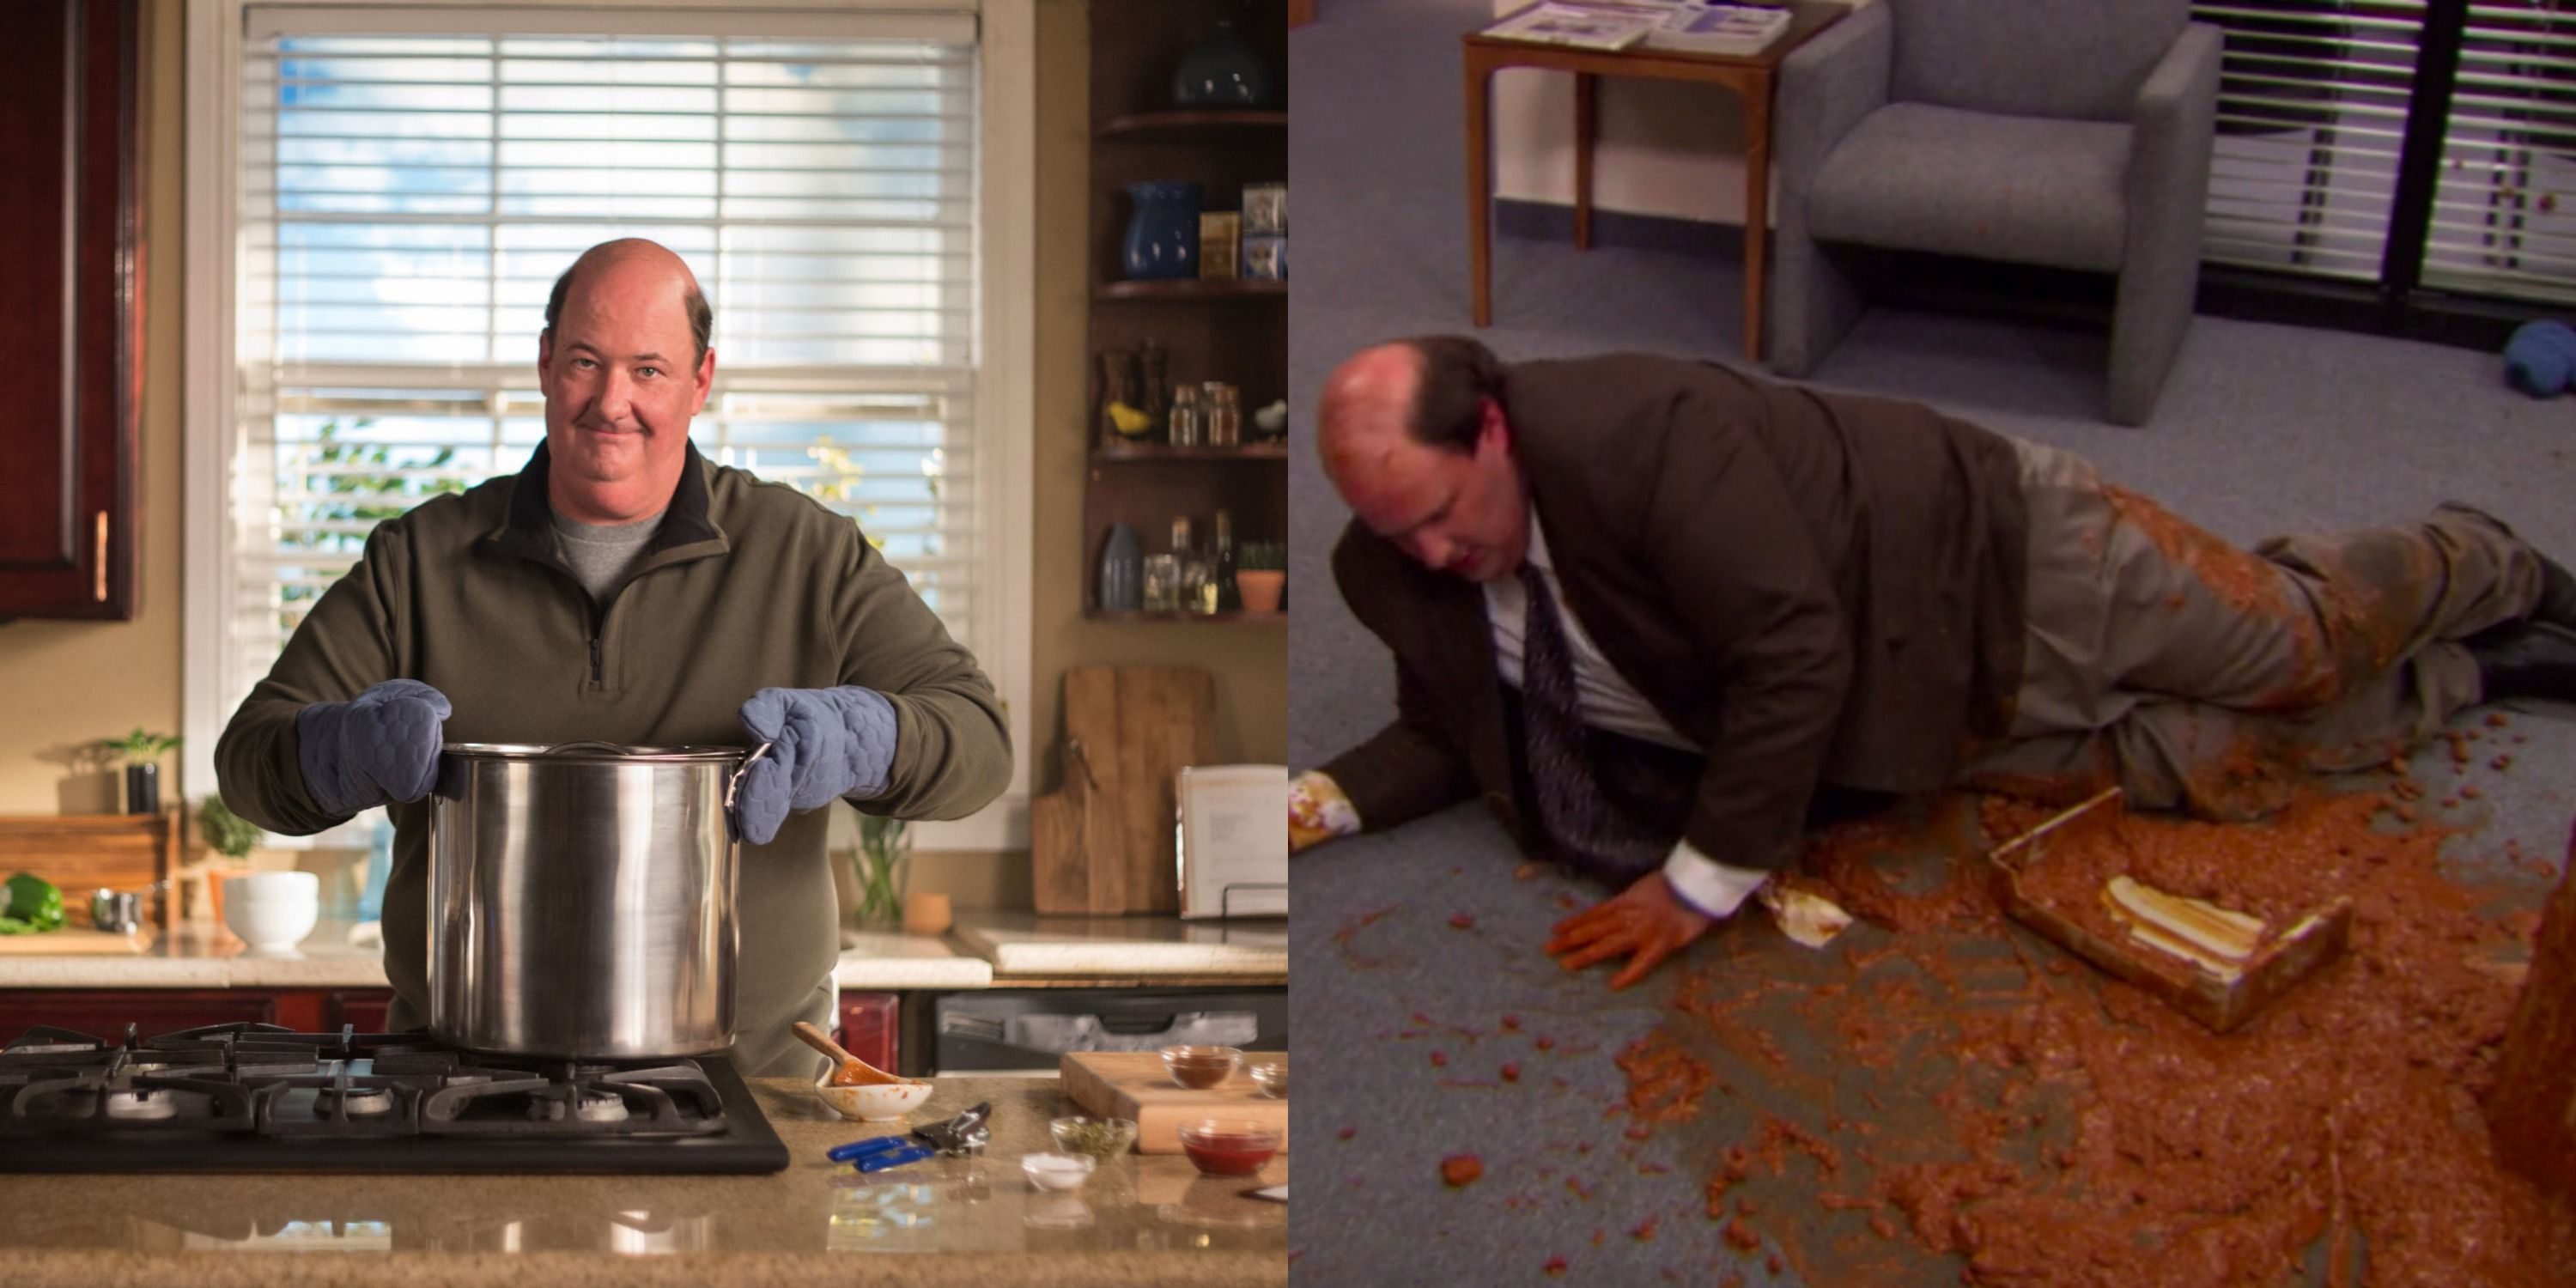 Kevin From The Office Shared His Chili Recipe